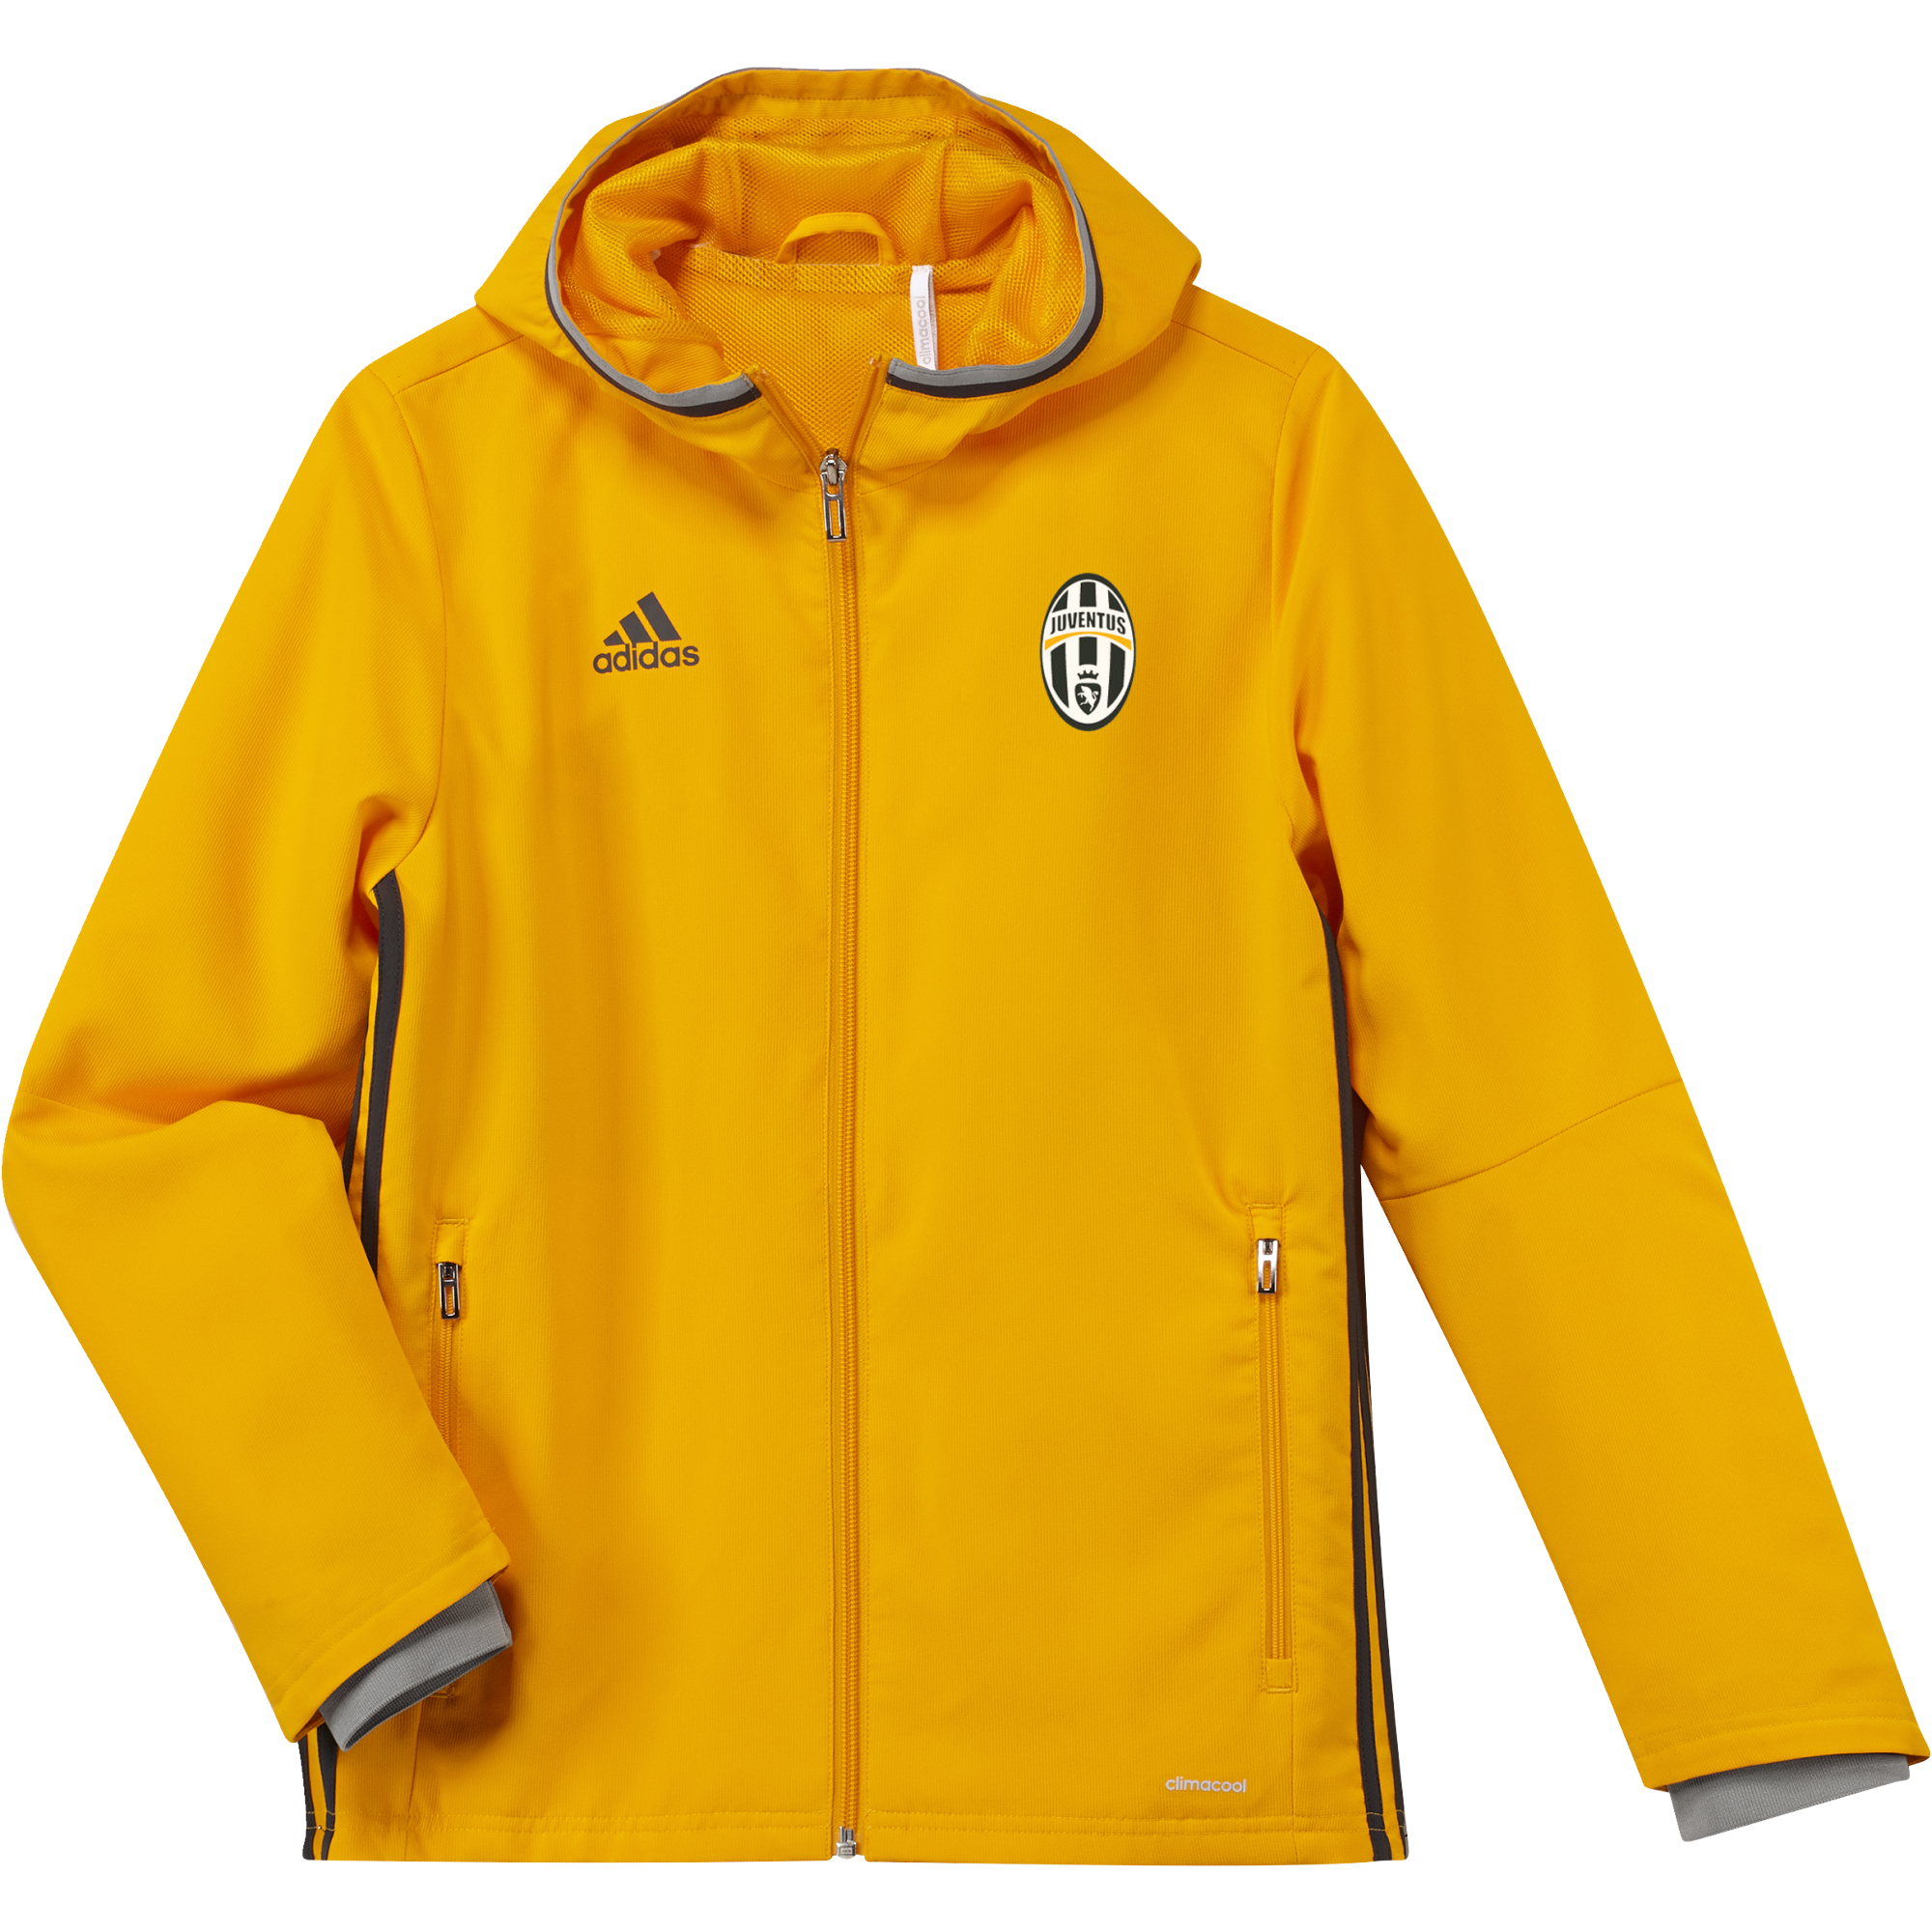 adidas juventus pre jkt junior jaune 2016 2017 juventus club etrangers. Black Bedroom Furniture Sets. Home Design Ideas